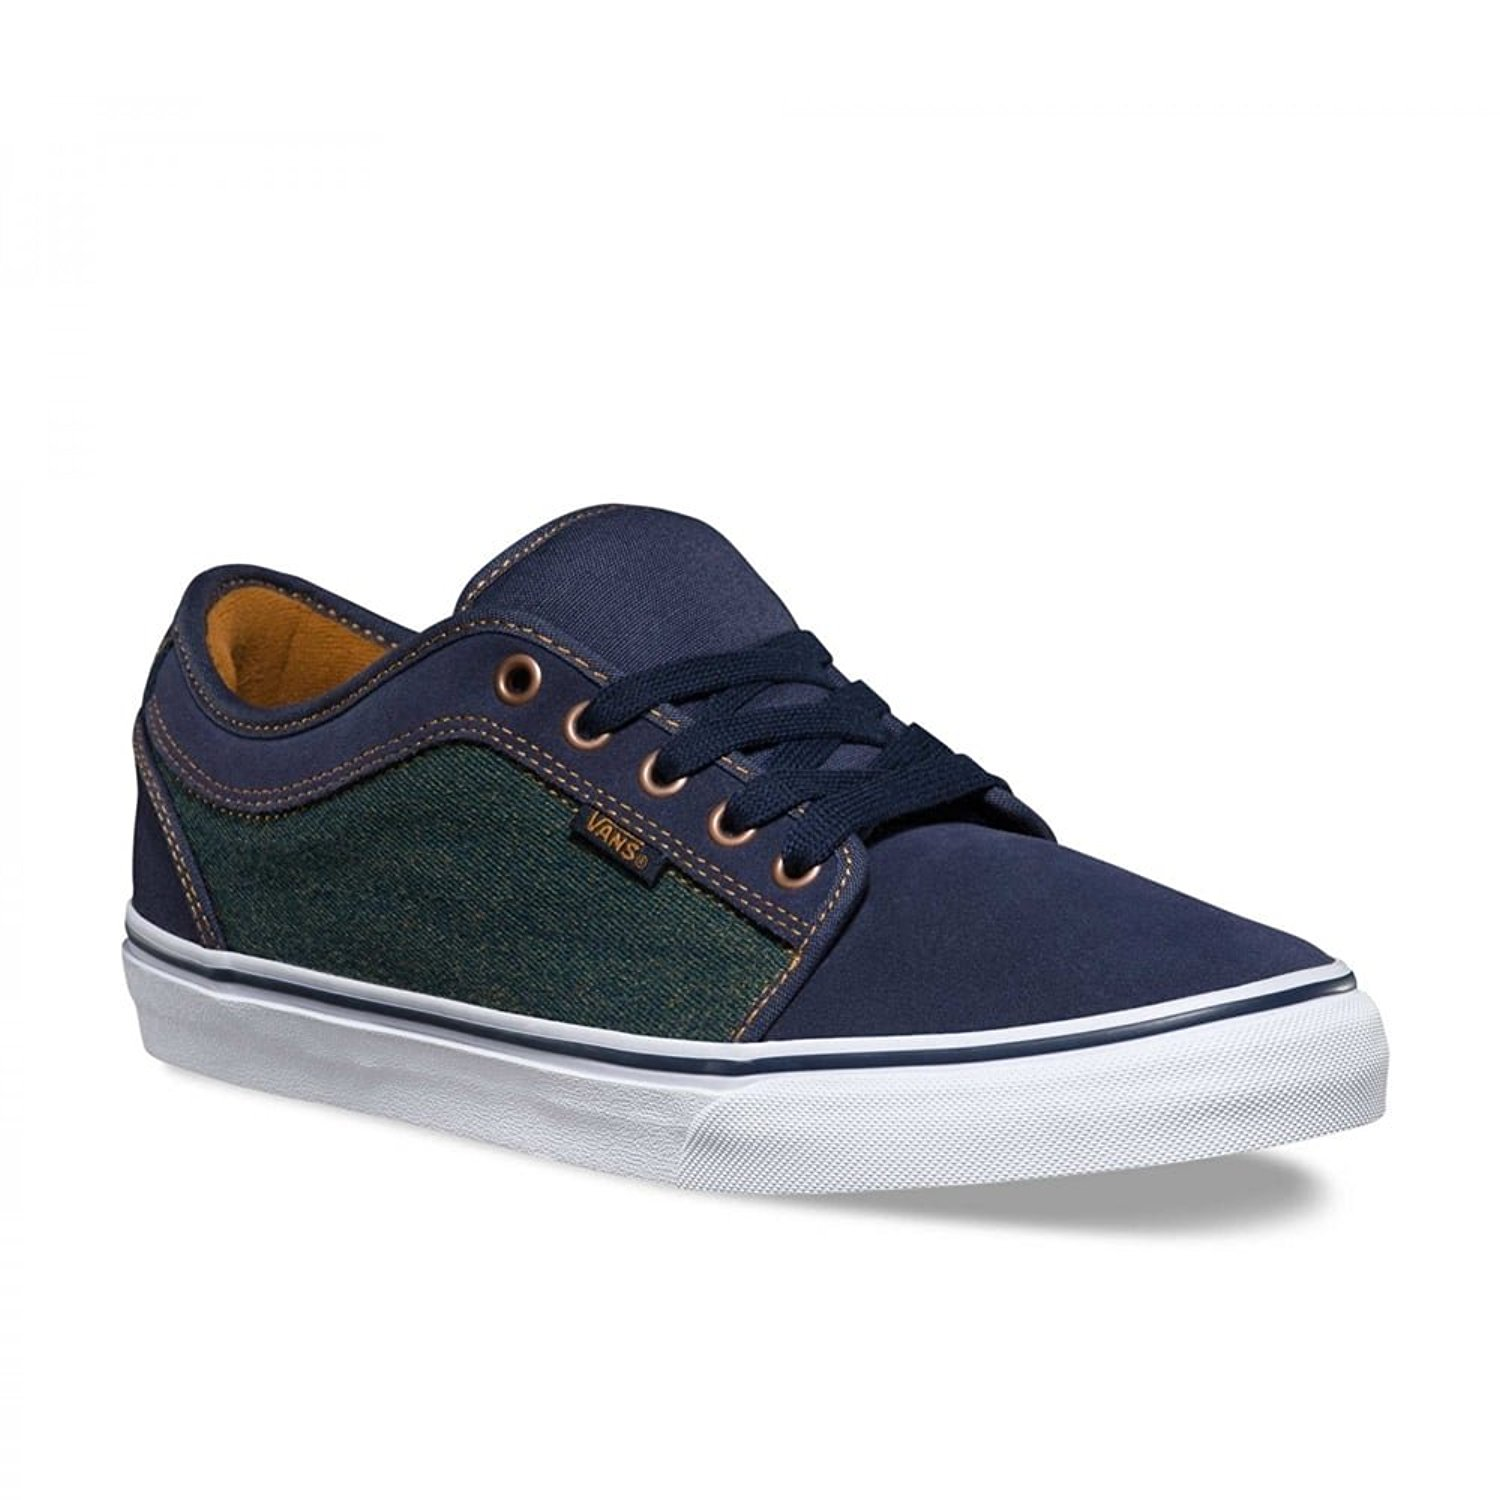 e90e820ddd7dc2 Get Quotations · VANS CHUKKA LOW DENIM NAVY BRONZ Y1